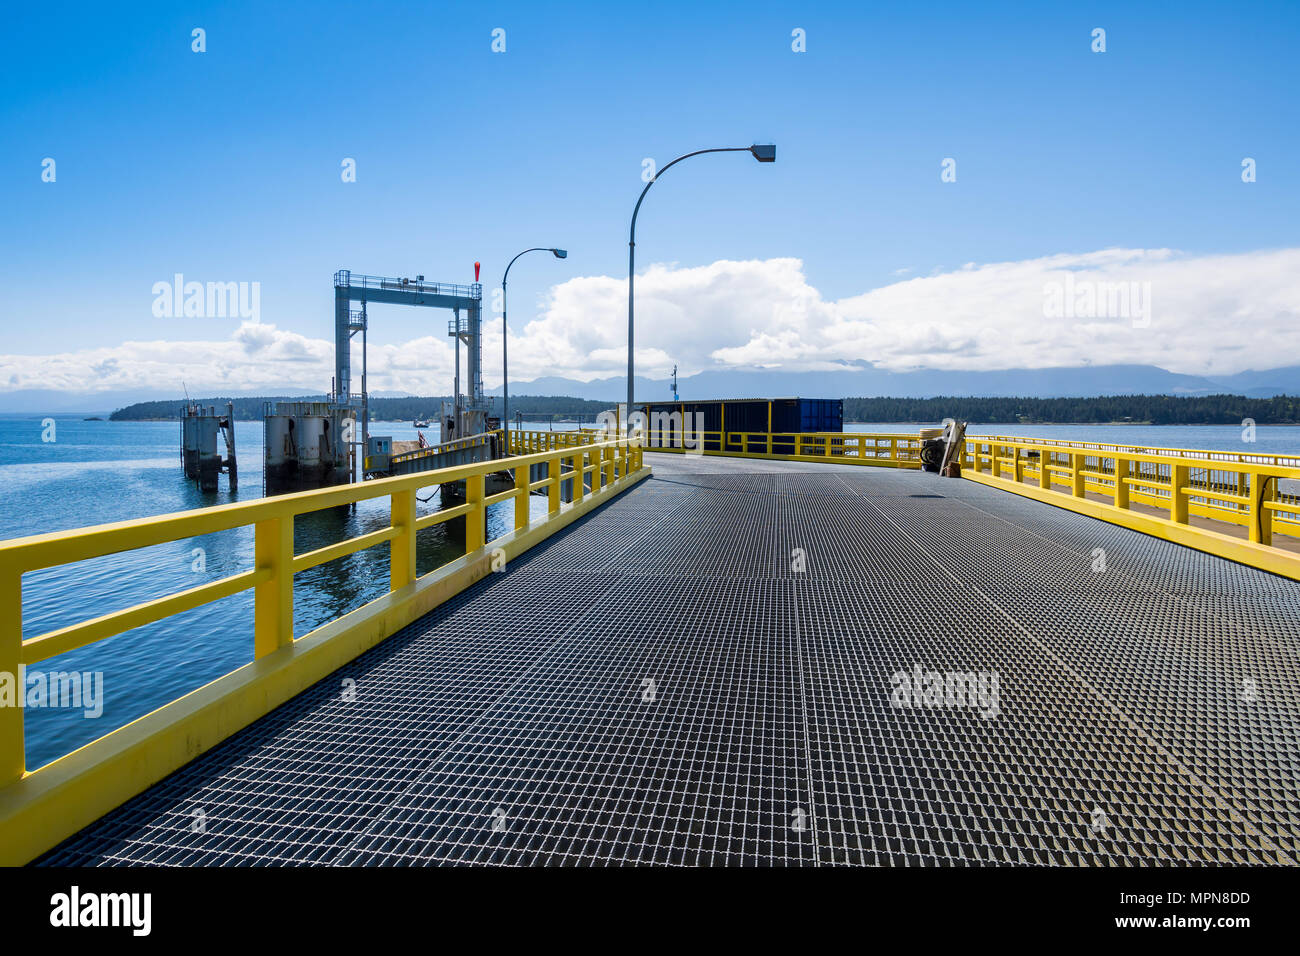 Approach ramp for cars onto ferry boat - Denman Island cable ferry - BC, Canada. - Stock Image